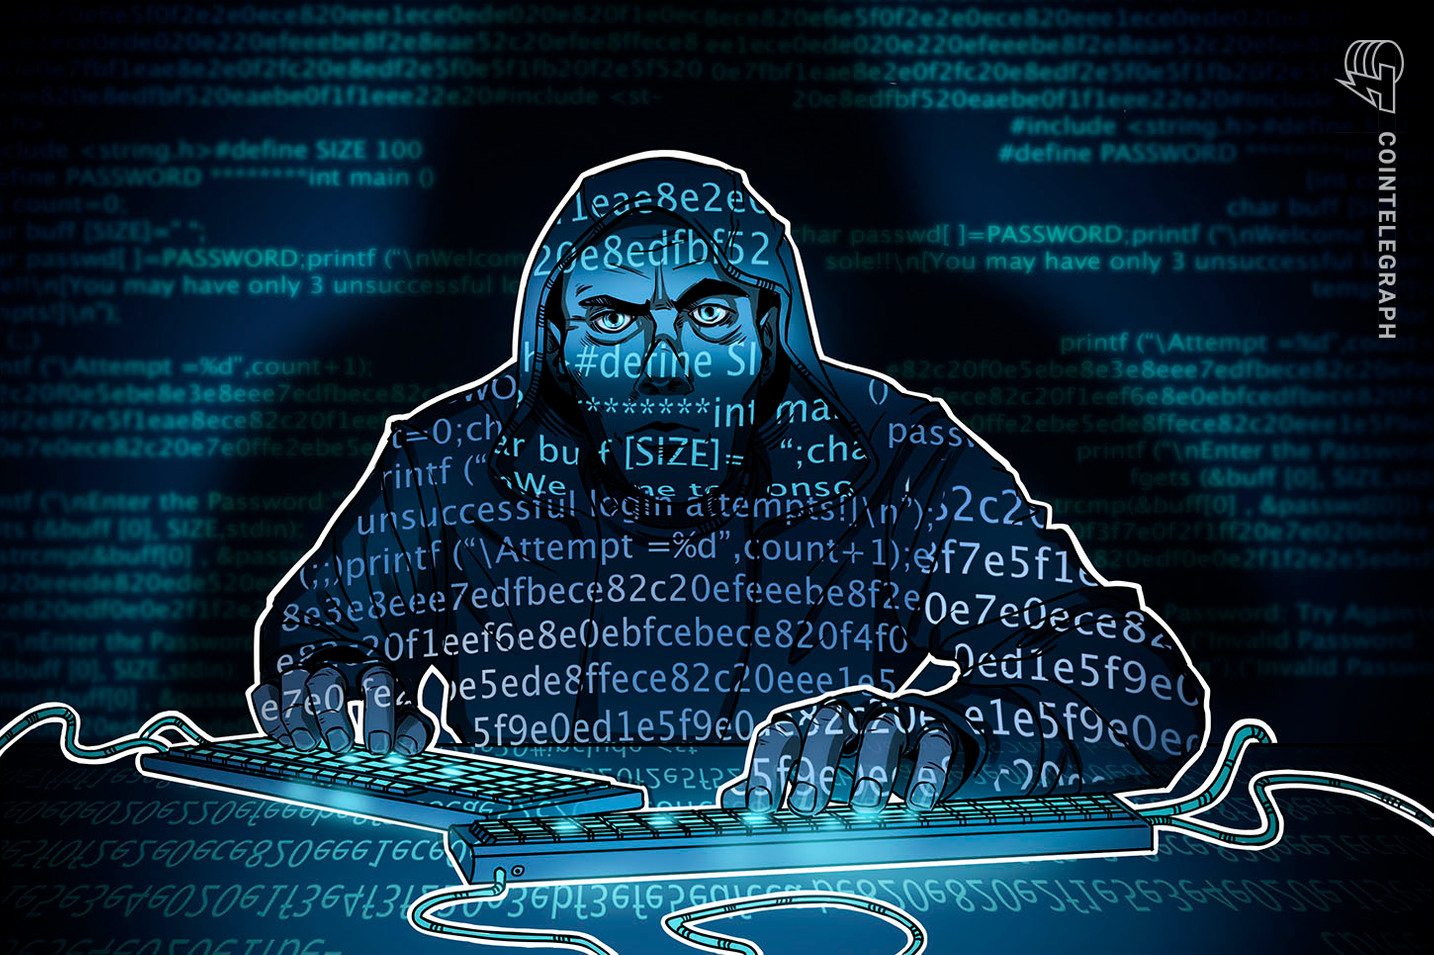 Poly Network hacker returns $258M, conducts AMA on how it went down